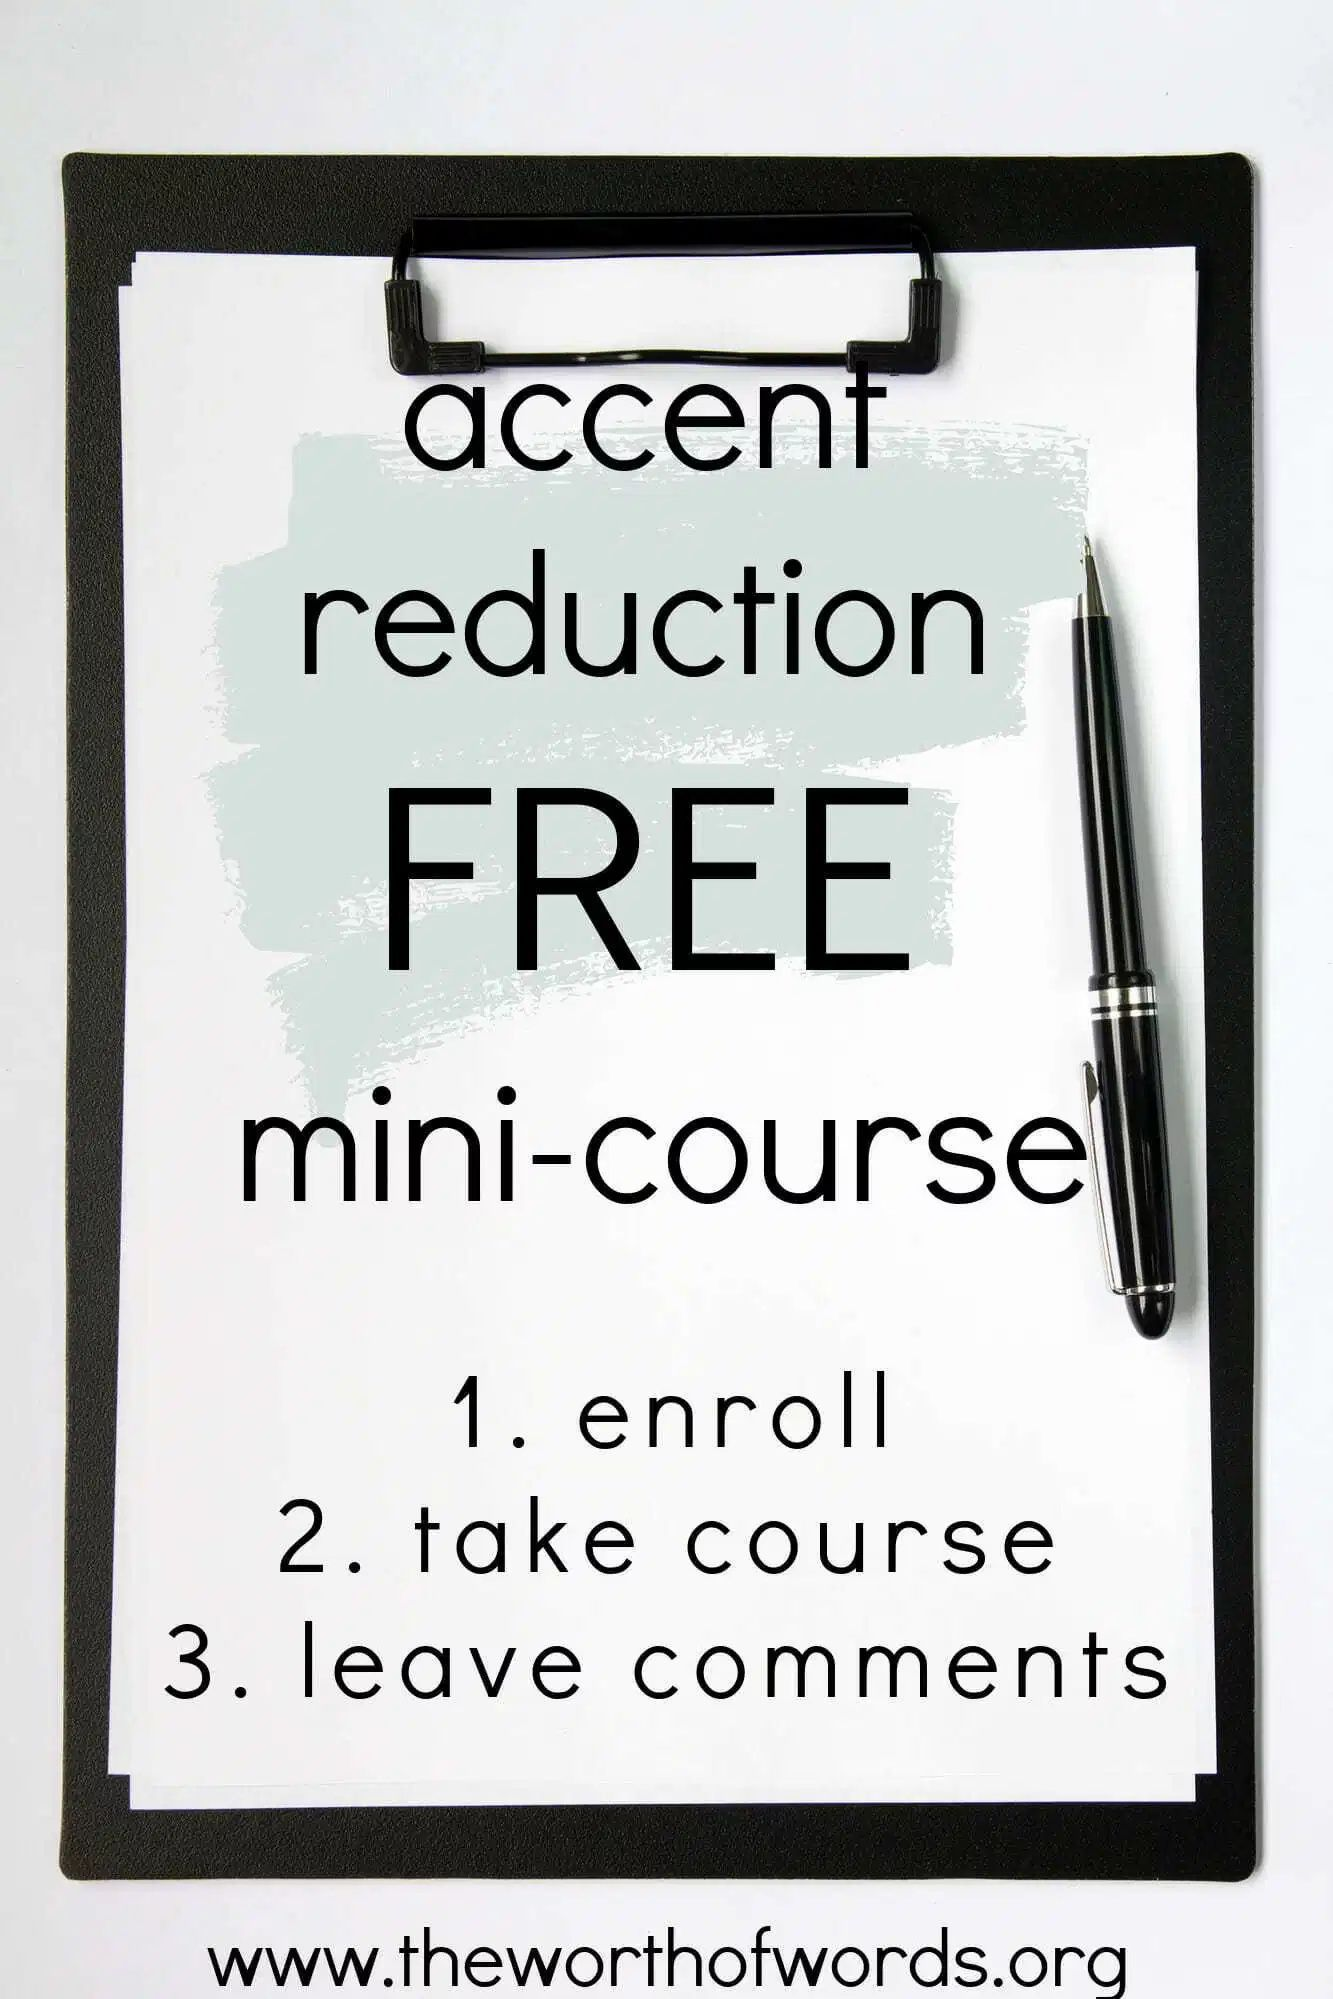 Accent reduction minicourse just launched the worth of